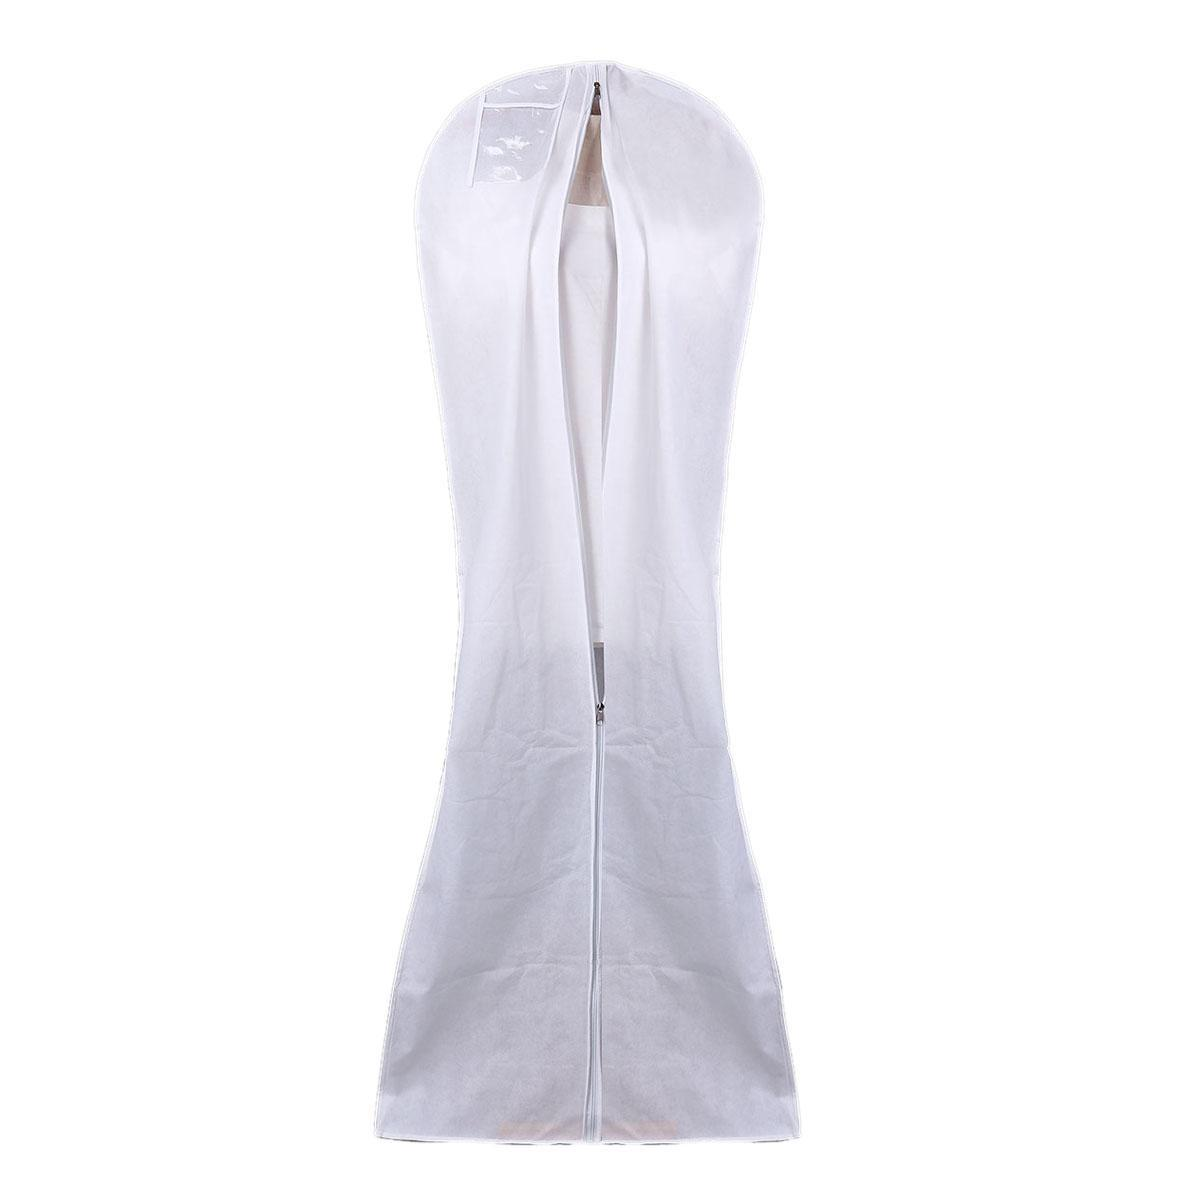 gsfy-hanging wedding dress bridal gown garment cover storage bag carry zip  dustproof white